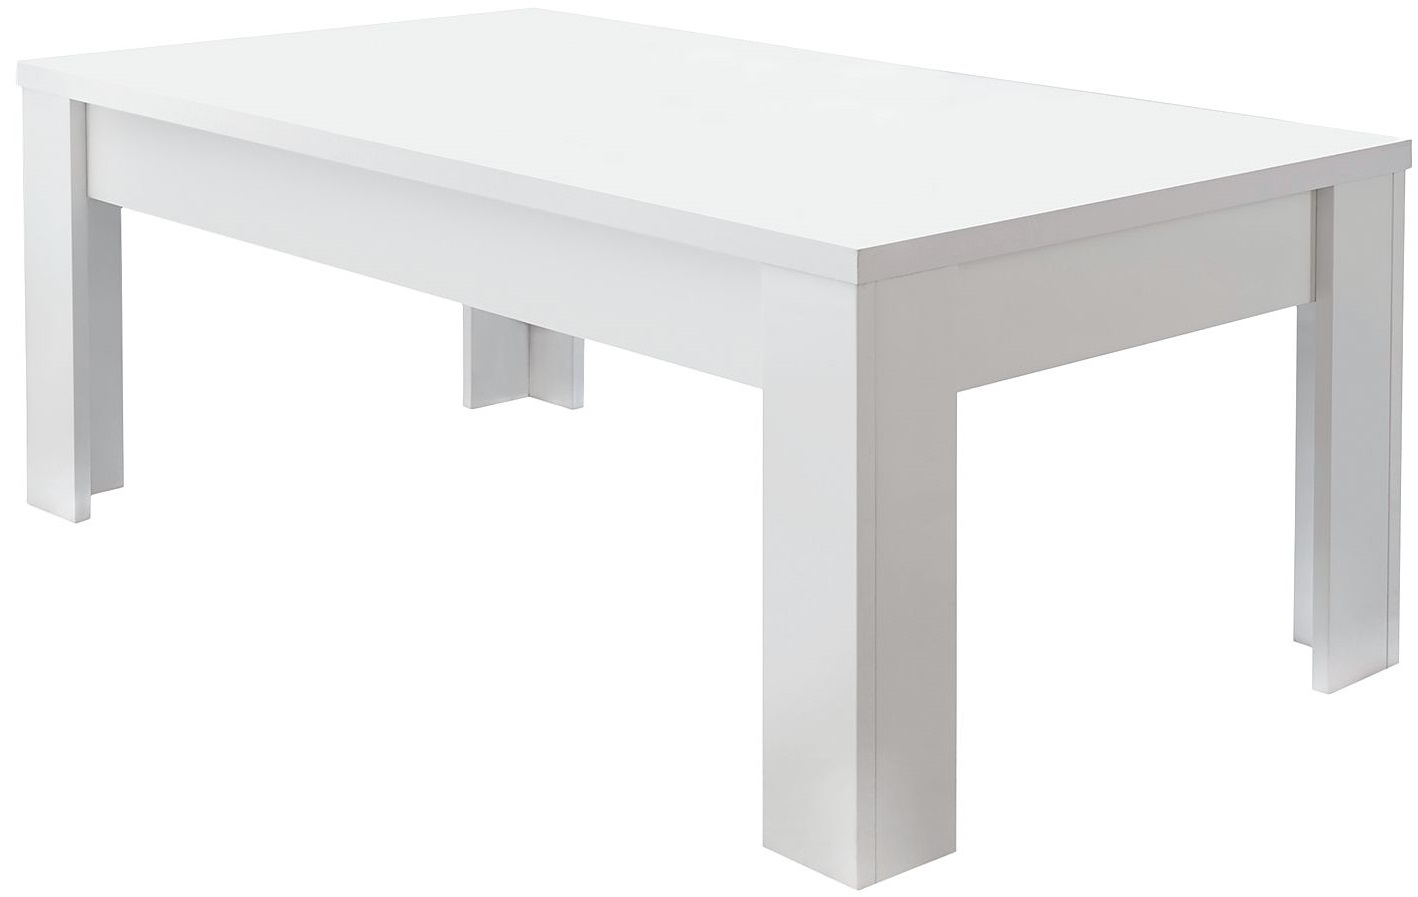 Salontafel SKY 122 cm breed – Wit